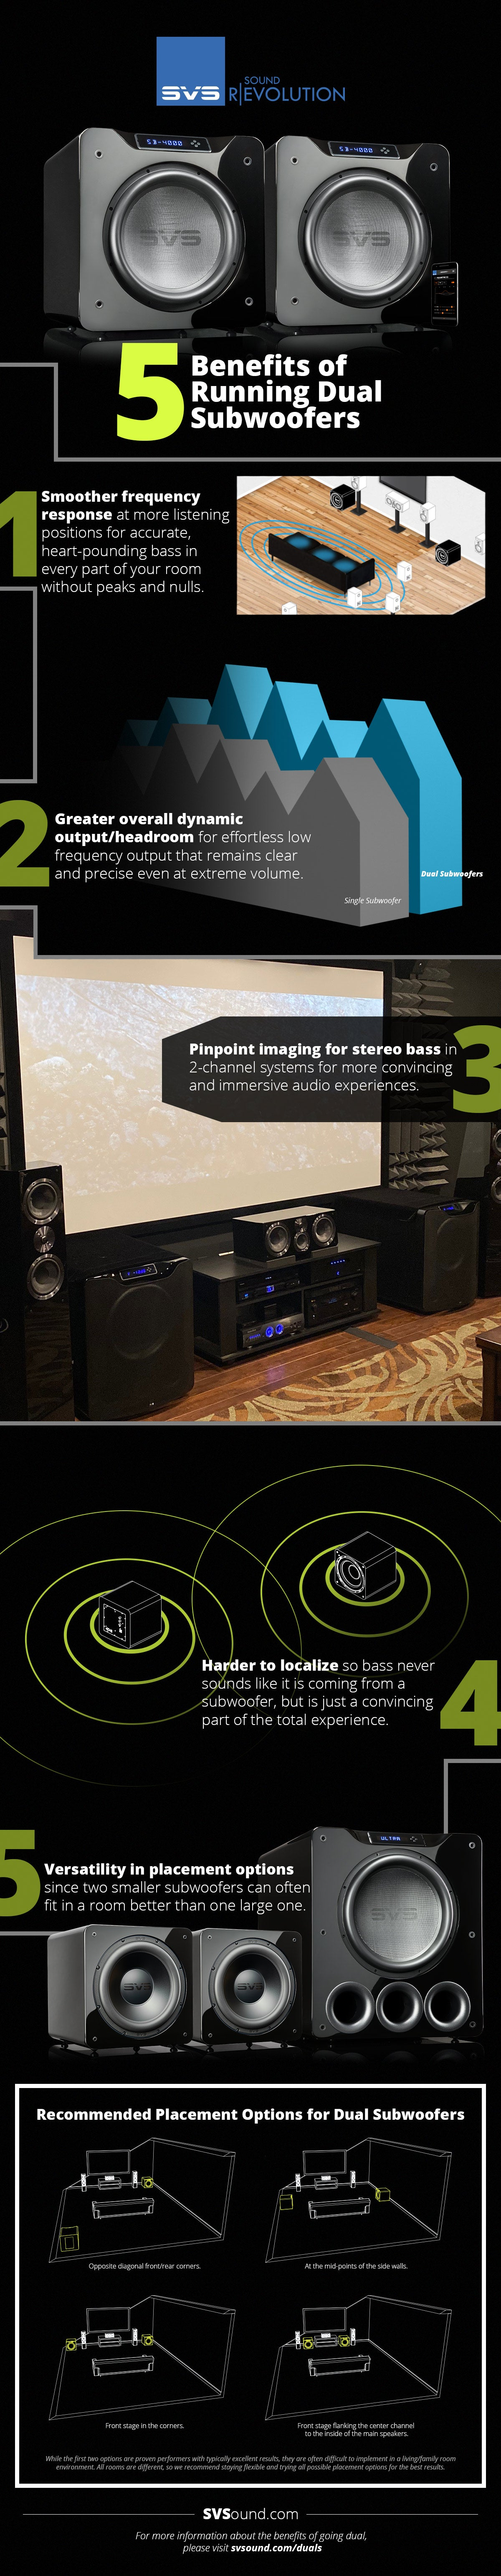 Going Dual Subwoofers - Infographic